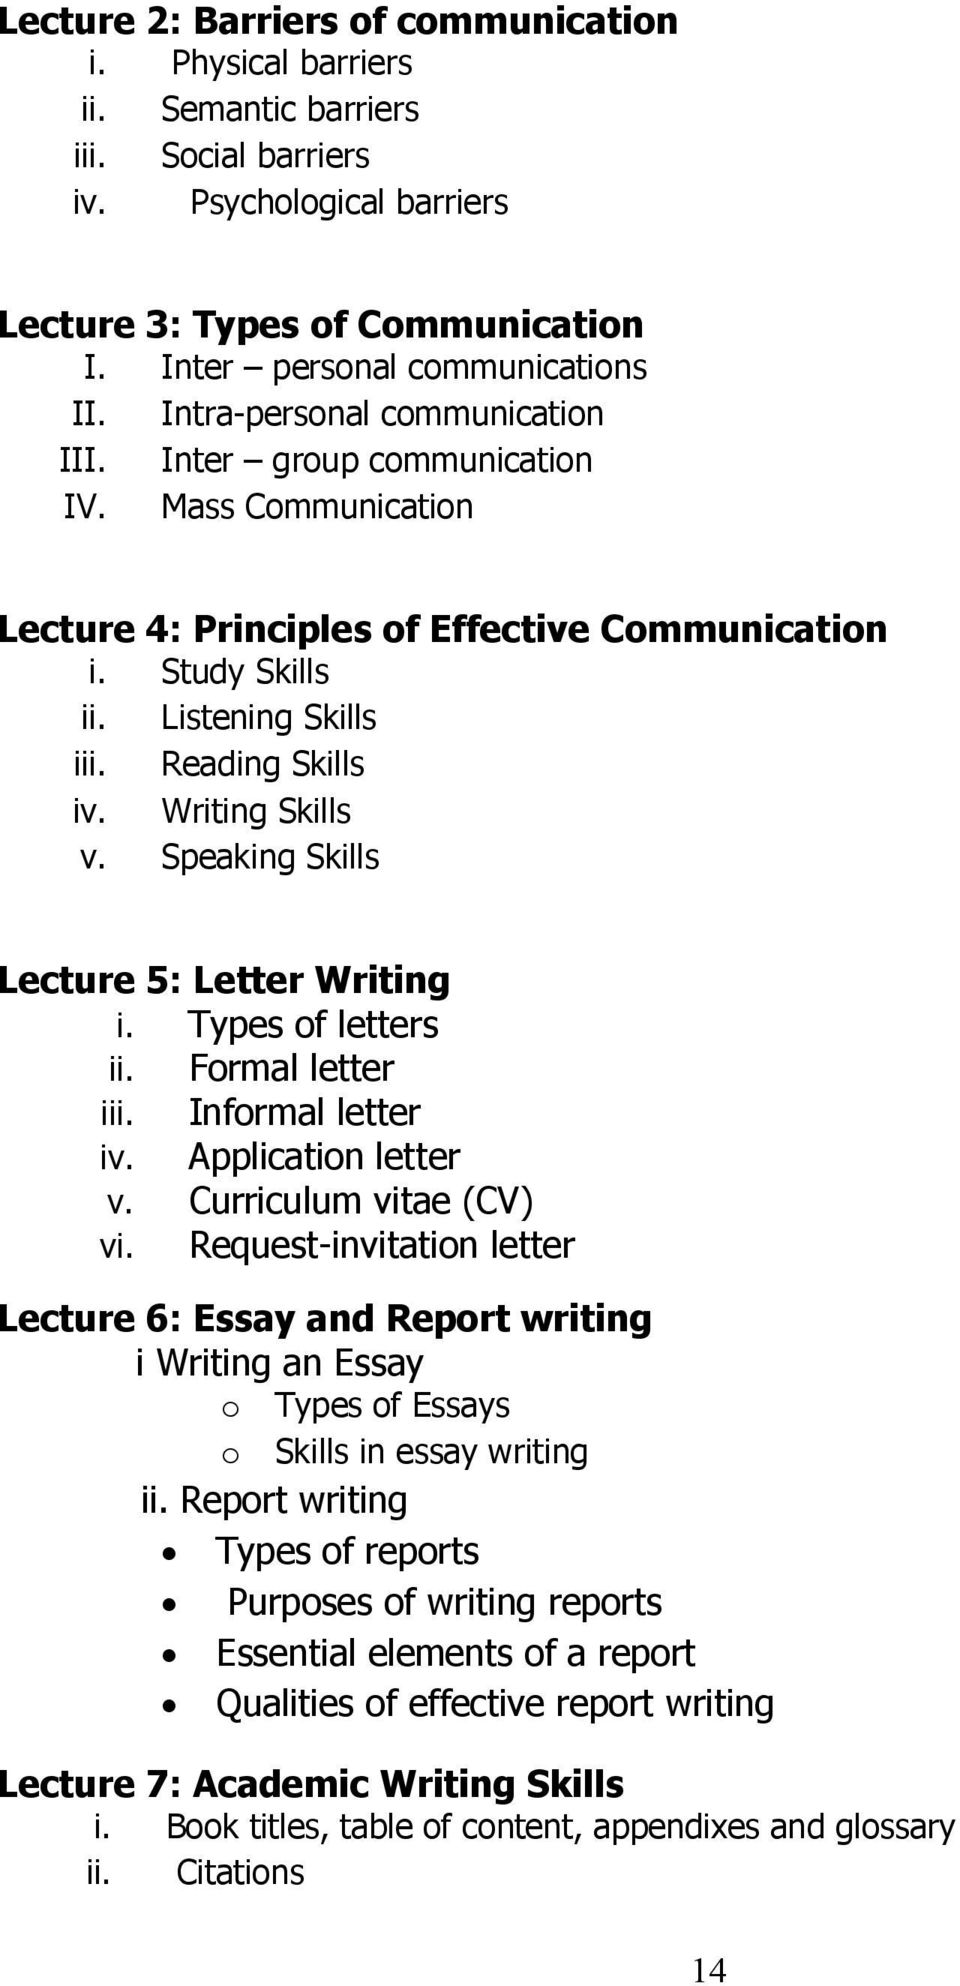 types essay essay essay types writing essay typers image resume  essay types types of essay writing